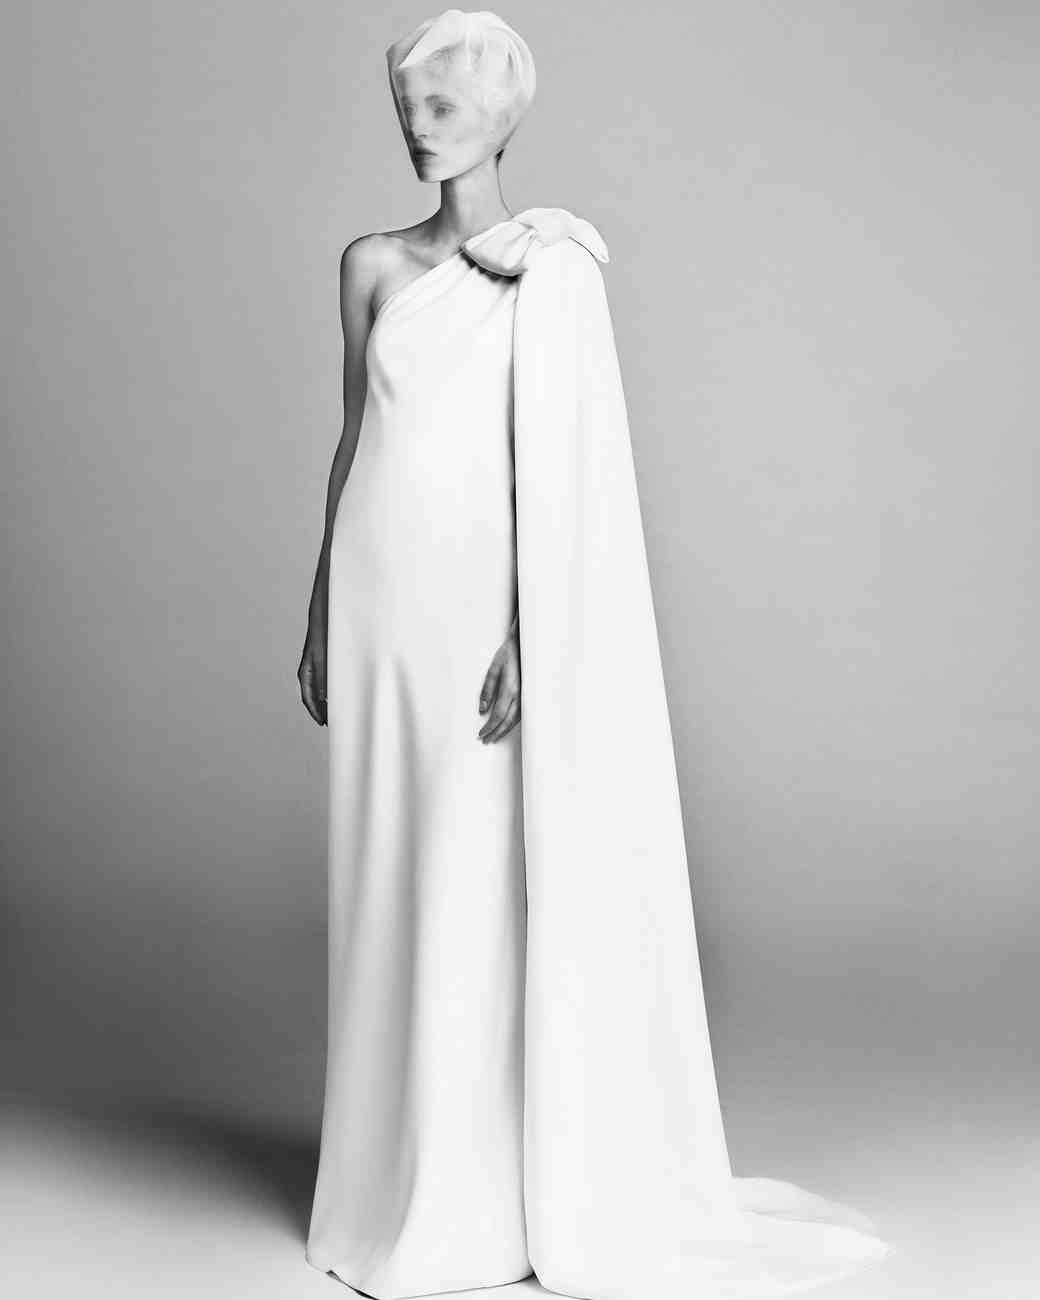 viktor-and-rolf-fall-2017-wedding-dress-011_vert